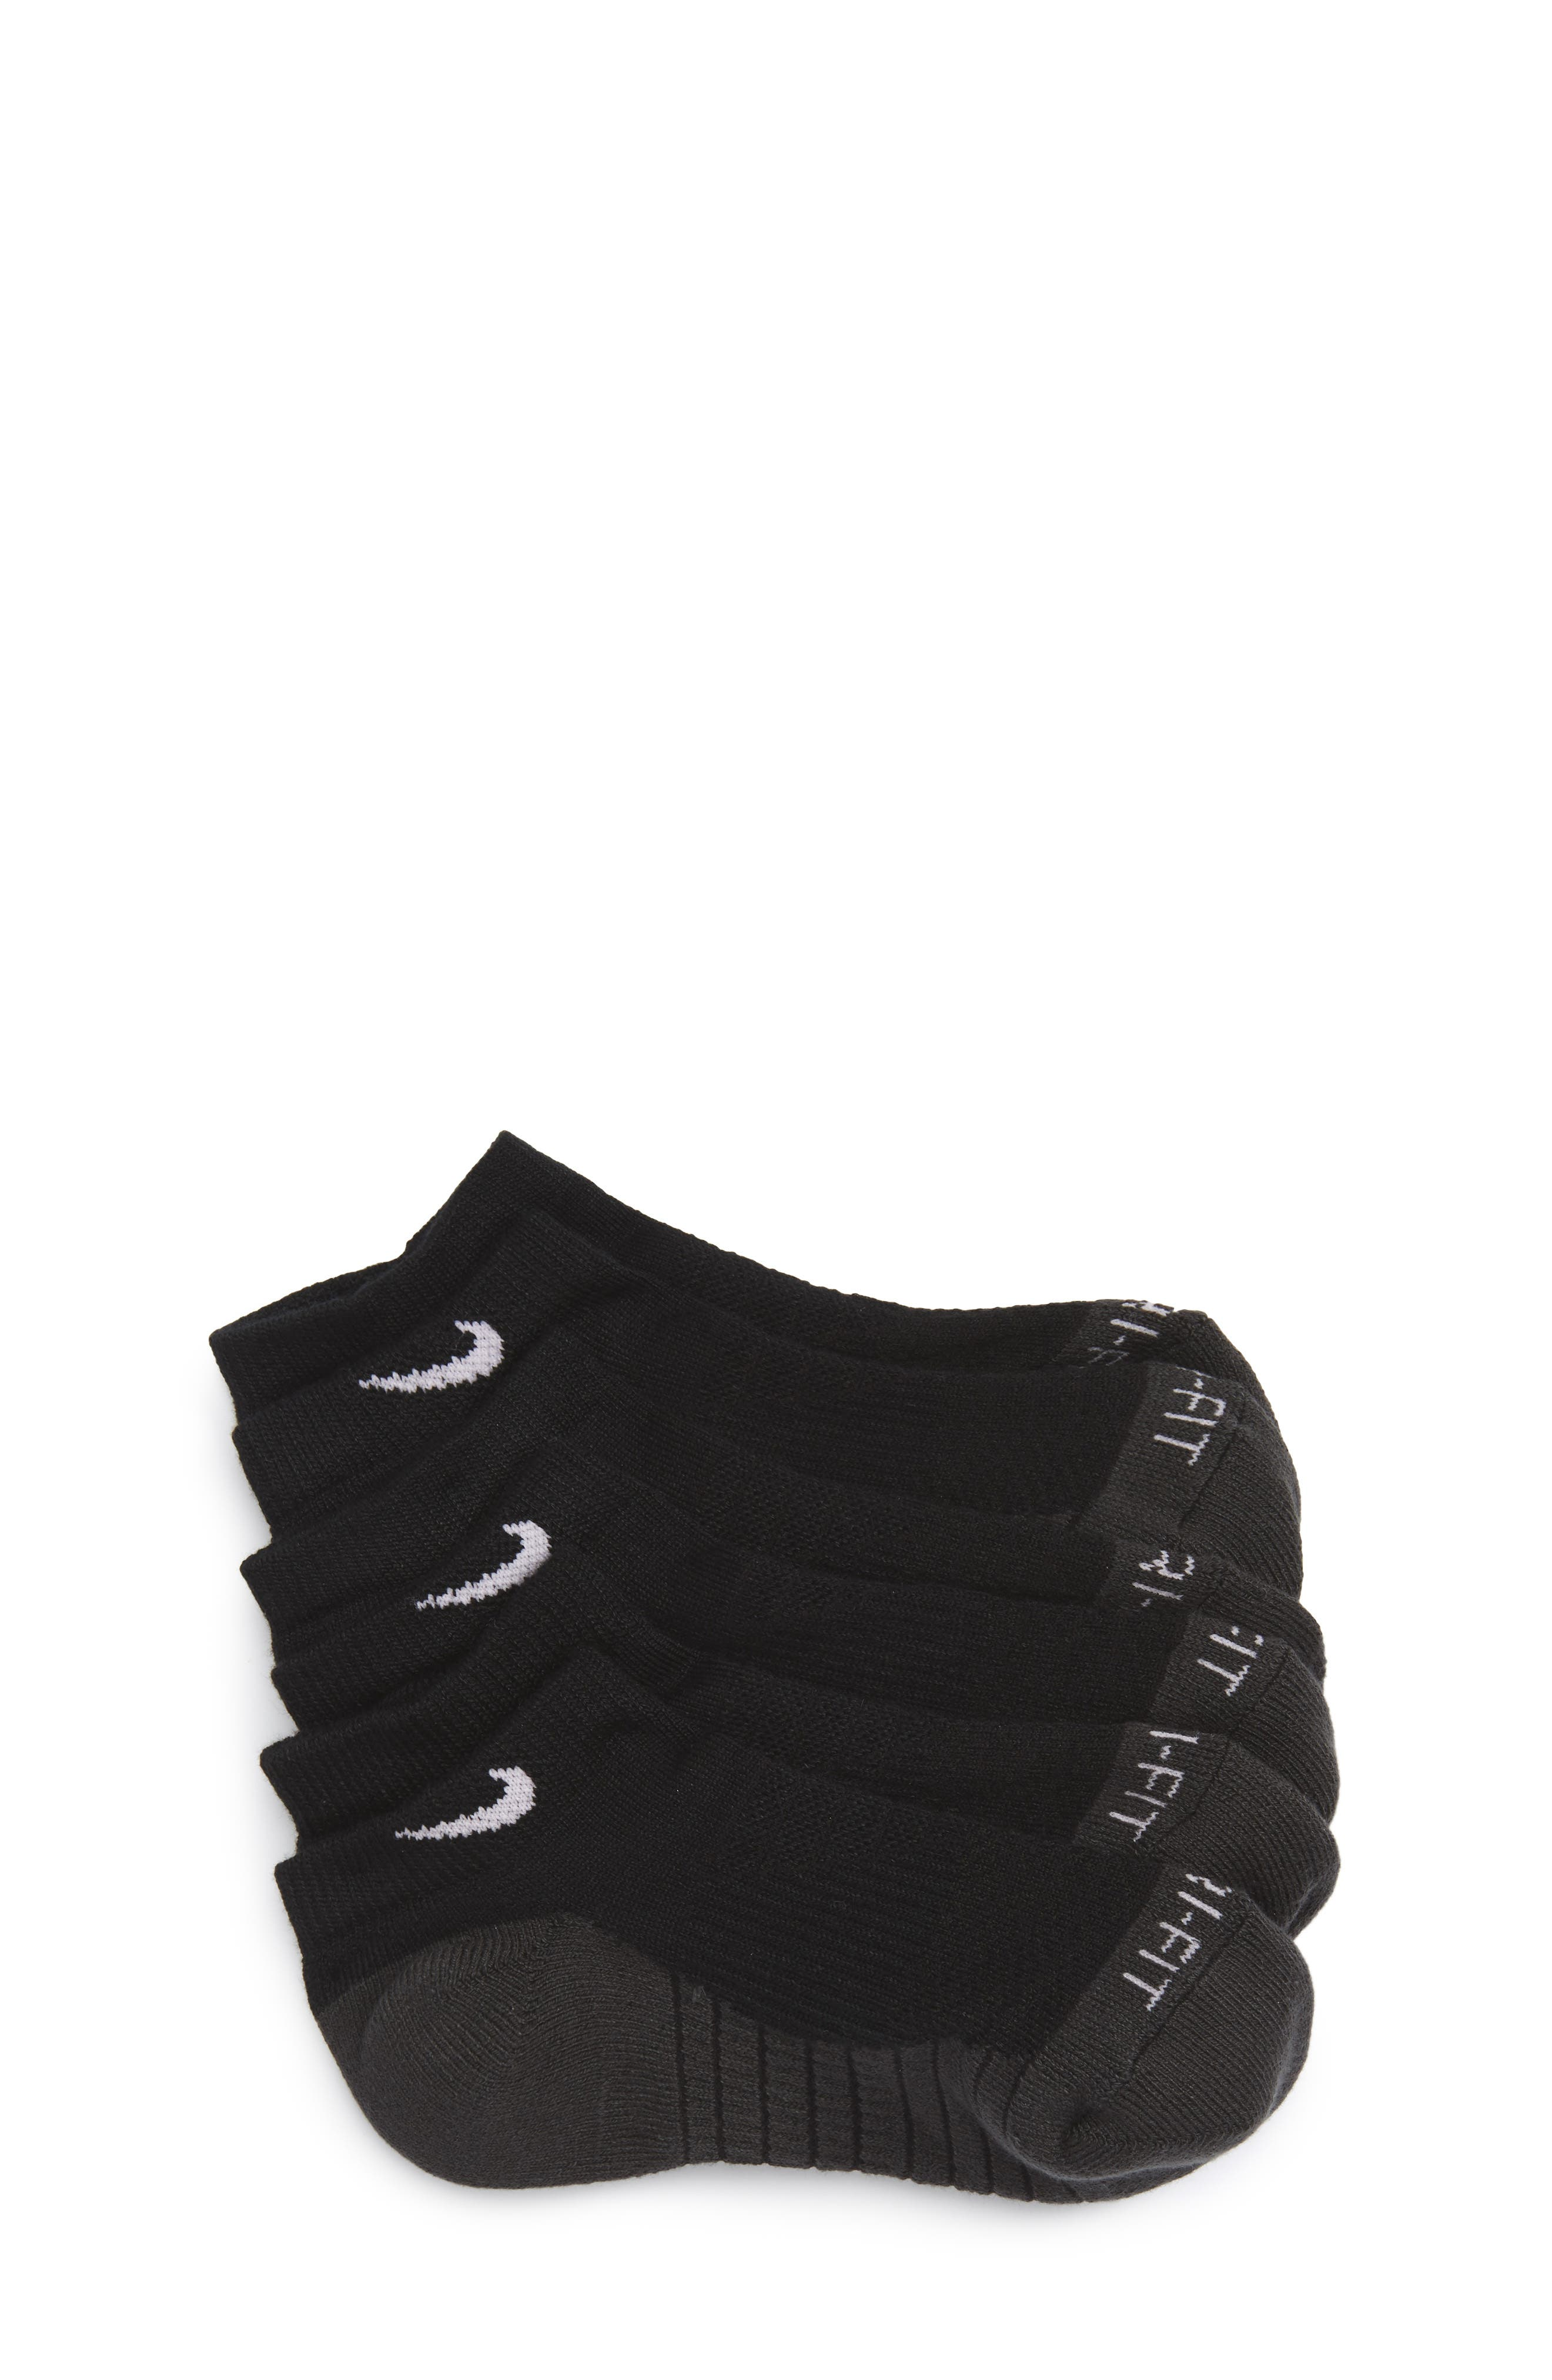 3-Pack Cushioned Dri-FIT No-Show Socks,                         Main,                         color, BLACK/ ANTHRACITE/ WHITE